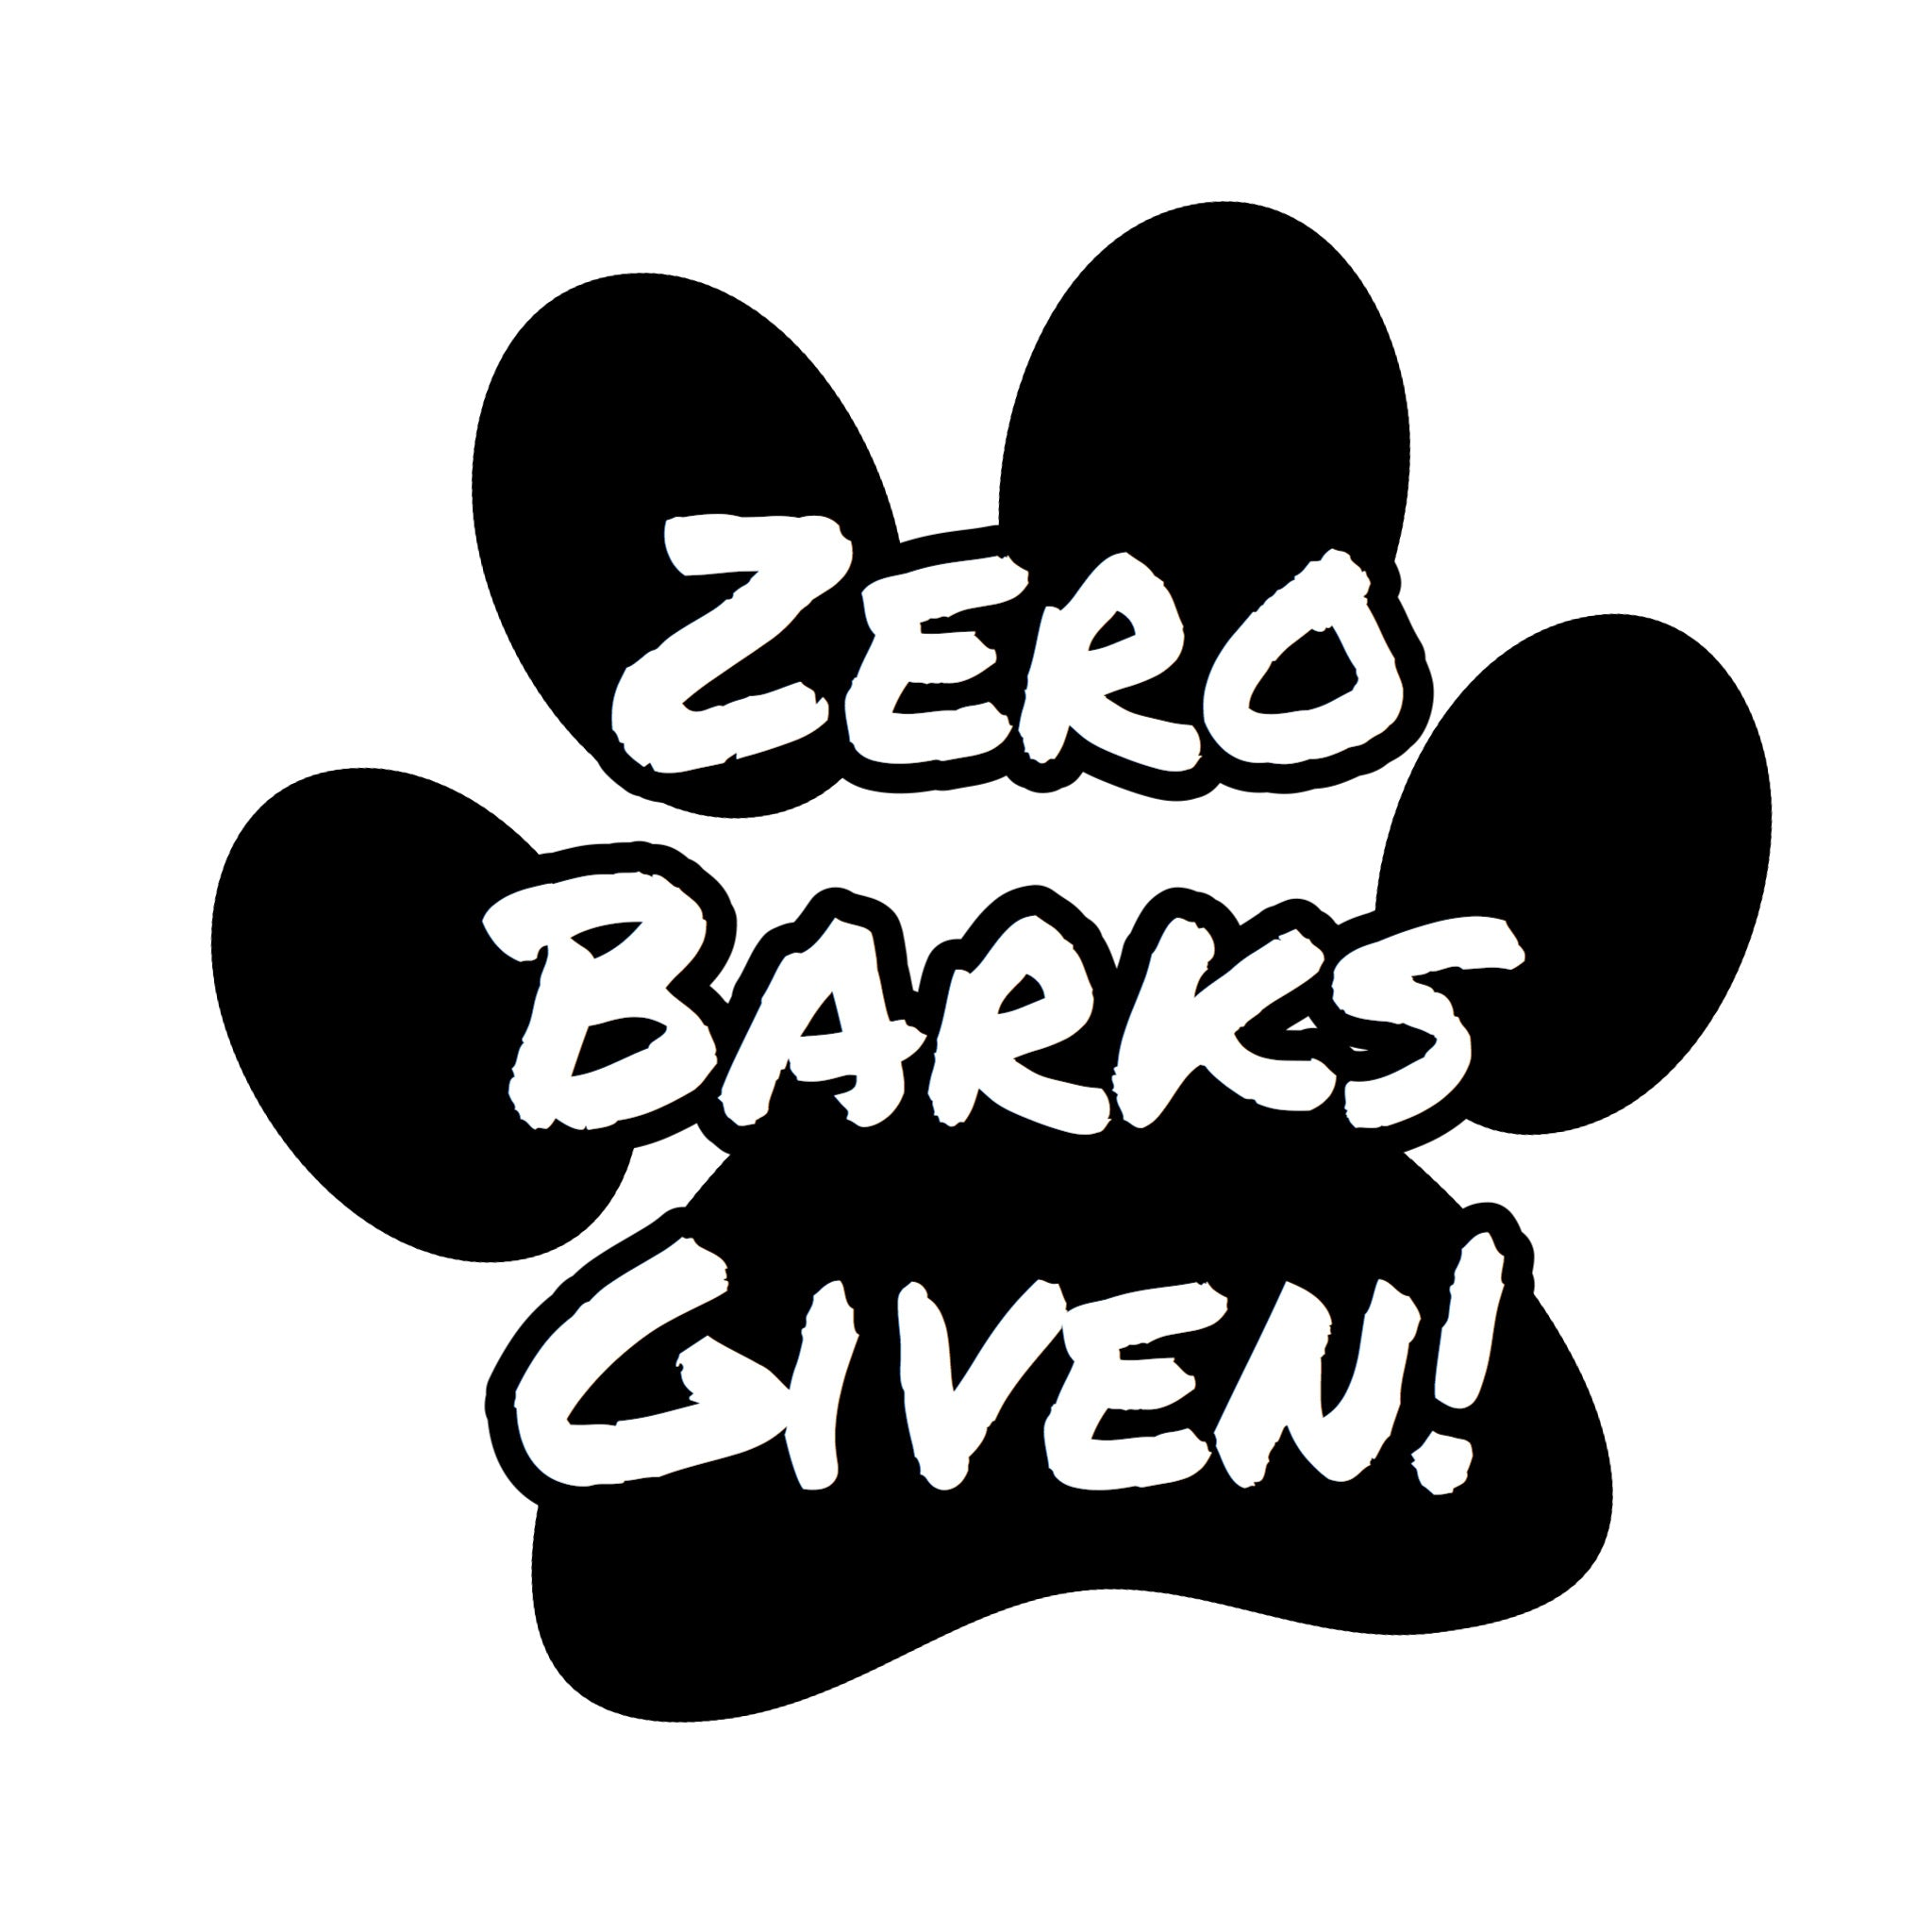 """Zero Barks Given!"" Text Add-On"